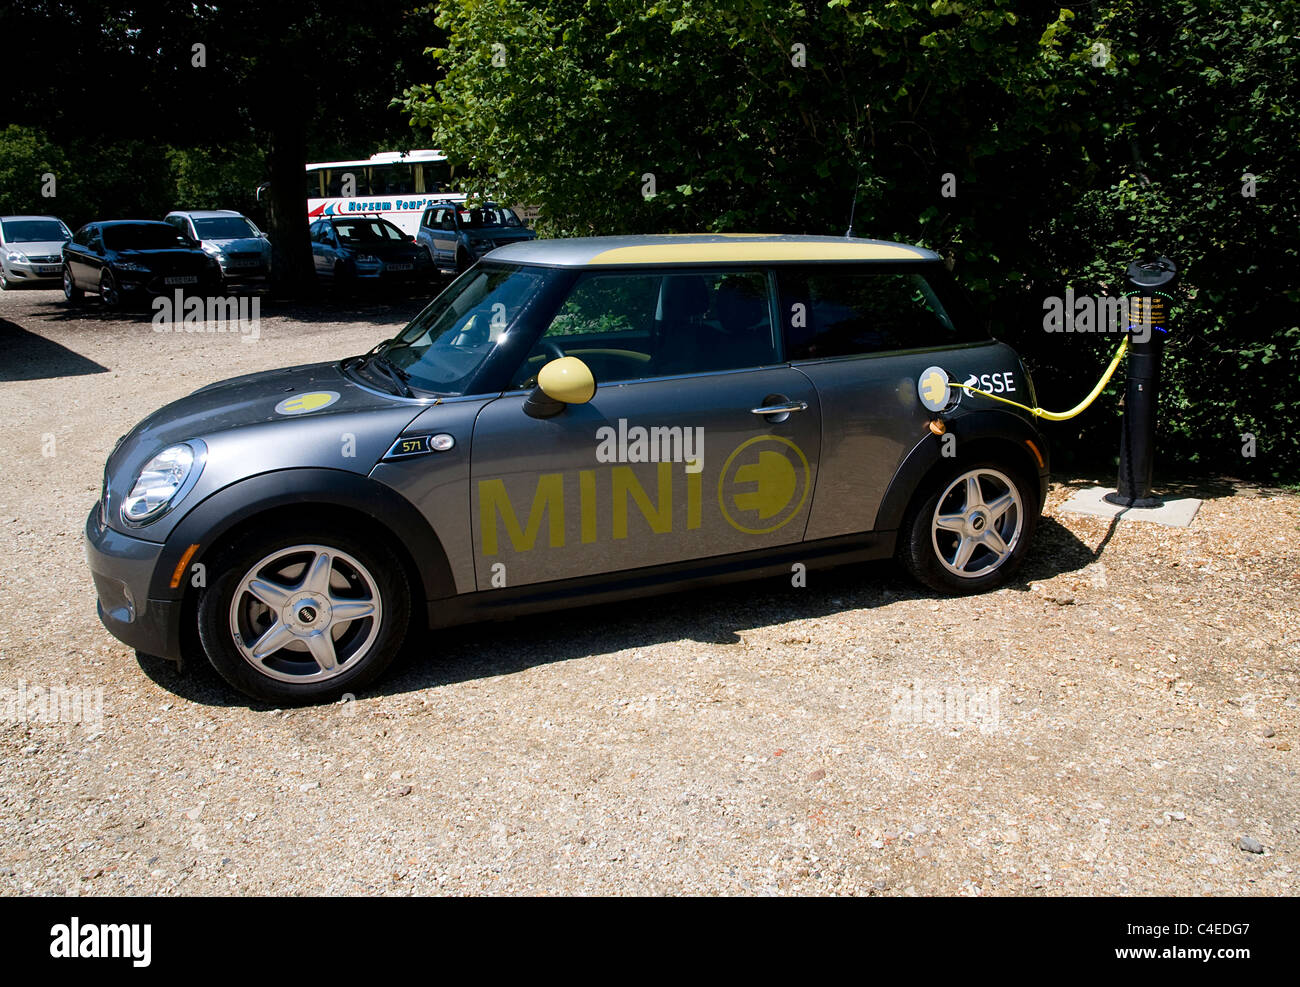 2011 Mini E Electric car at battery charging point - Stock Image